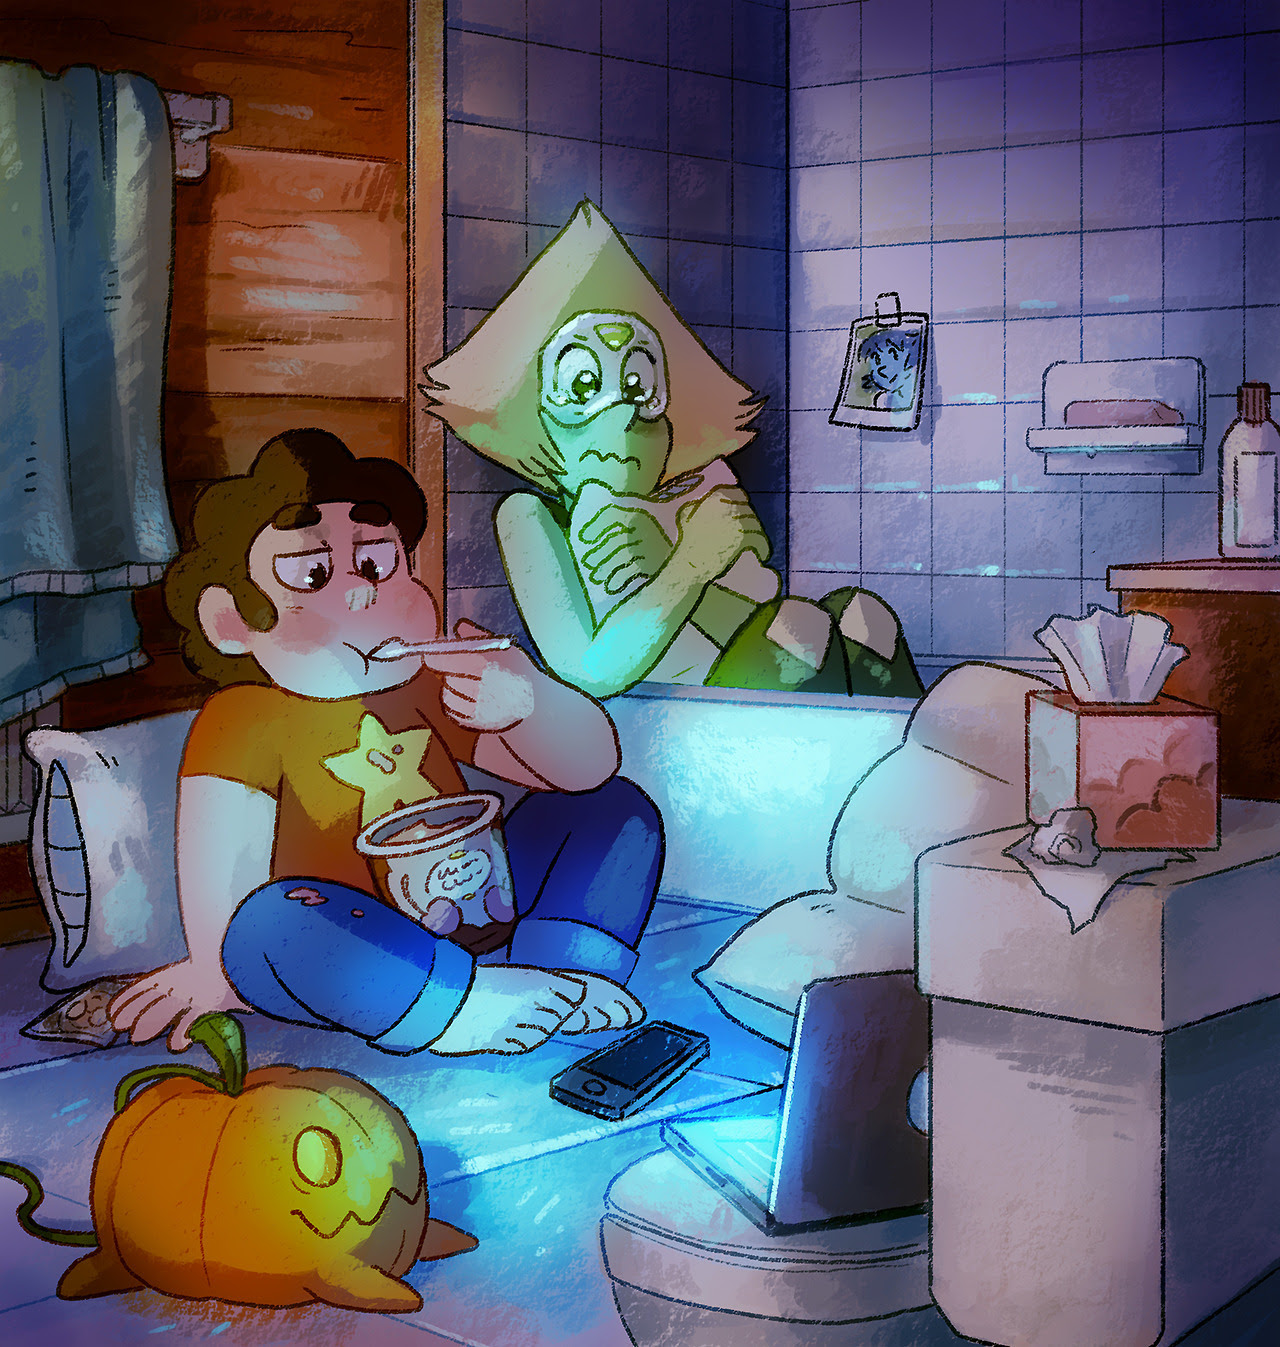 Rewatching episodes in preparation! Here are my kids watching romcoms in the bathroom